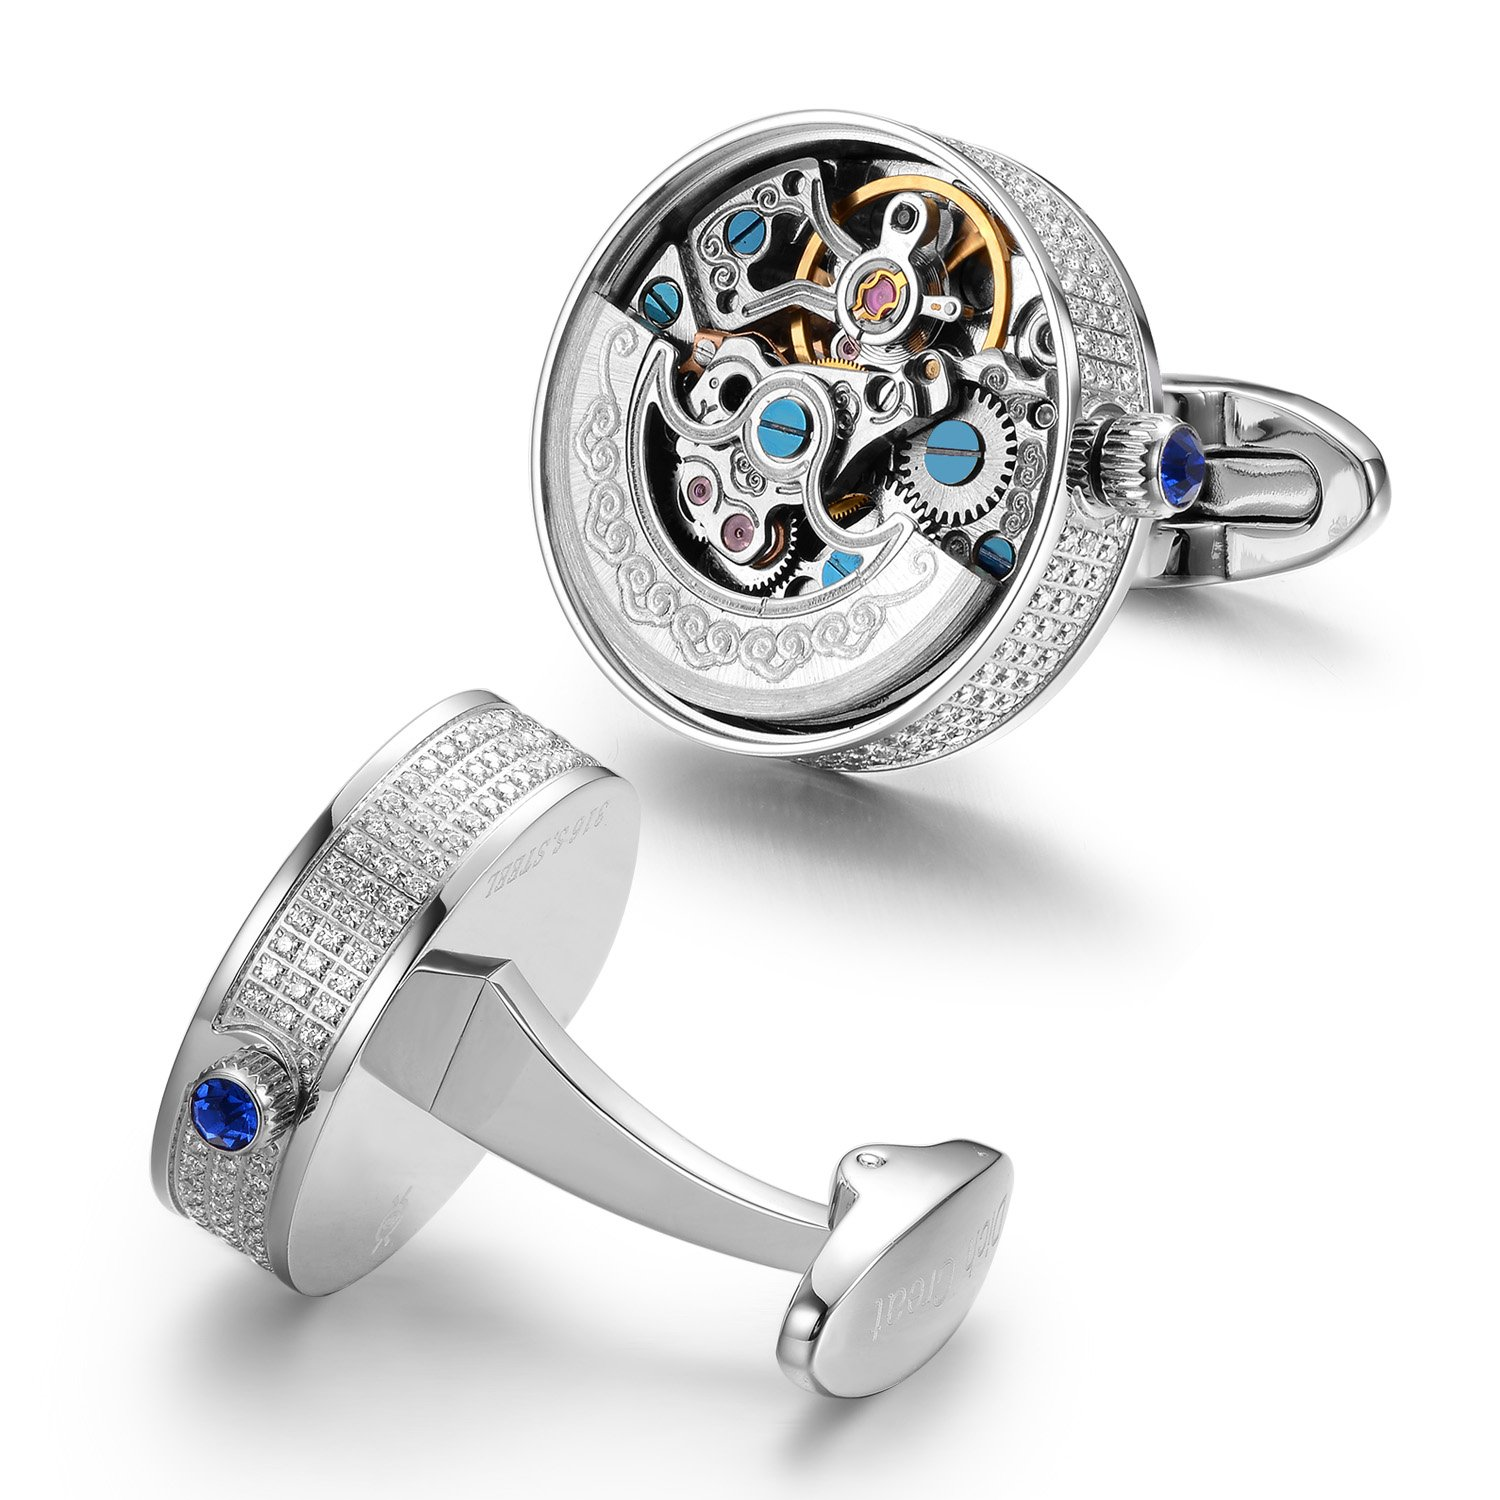 Dich Creat Stainless Steel Rhodium Plated Inlay Jewels Skeleton Automatic New Movement Cufflinks